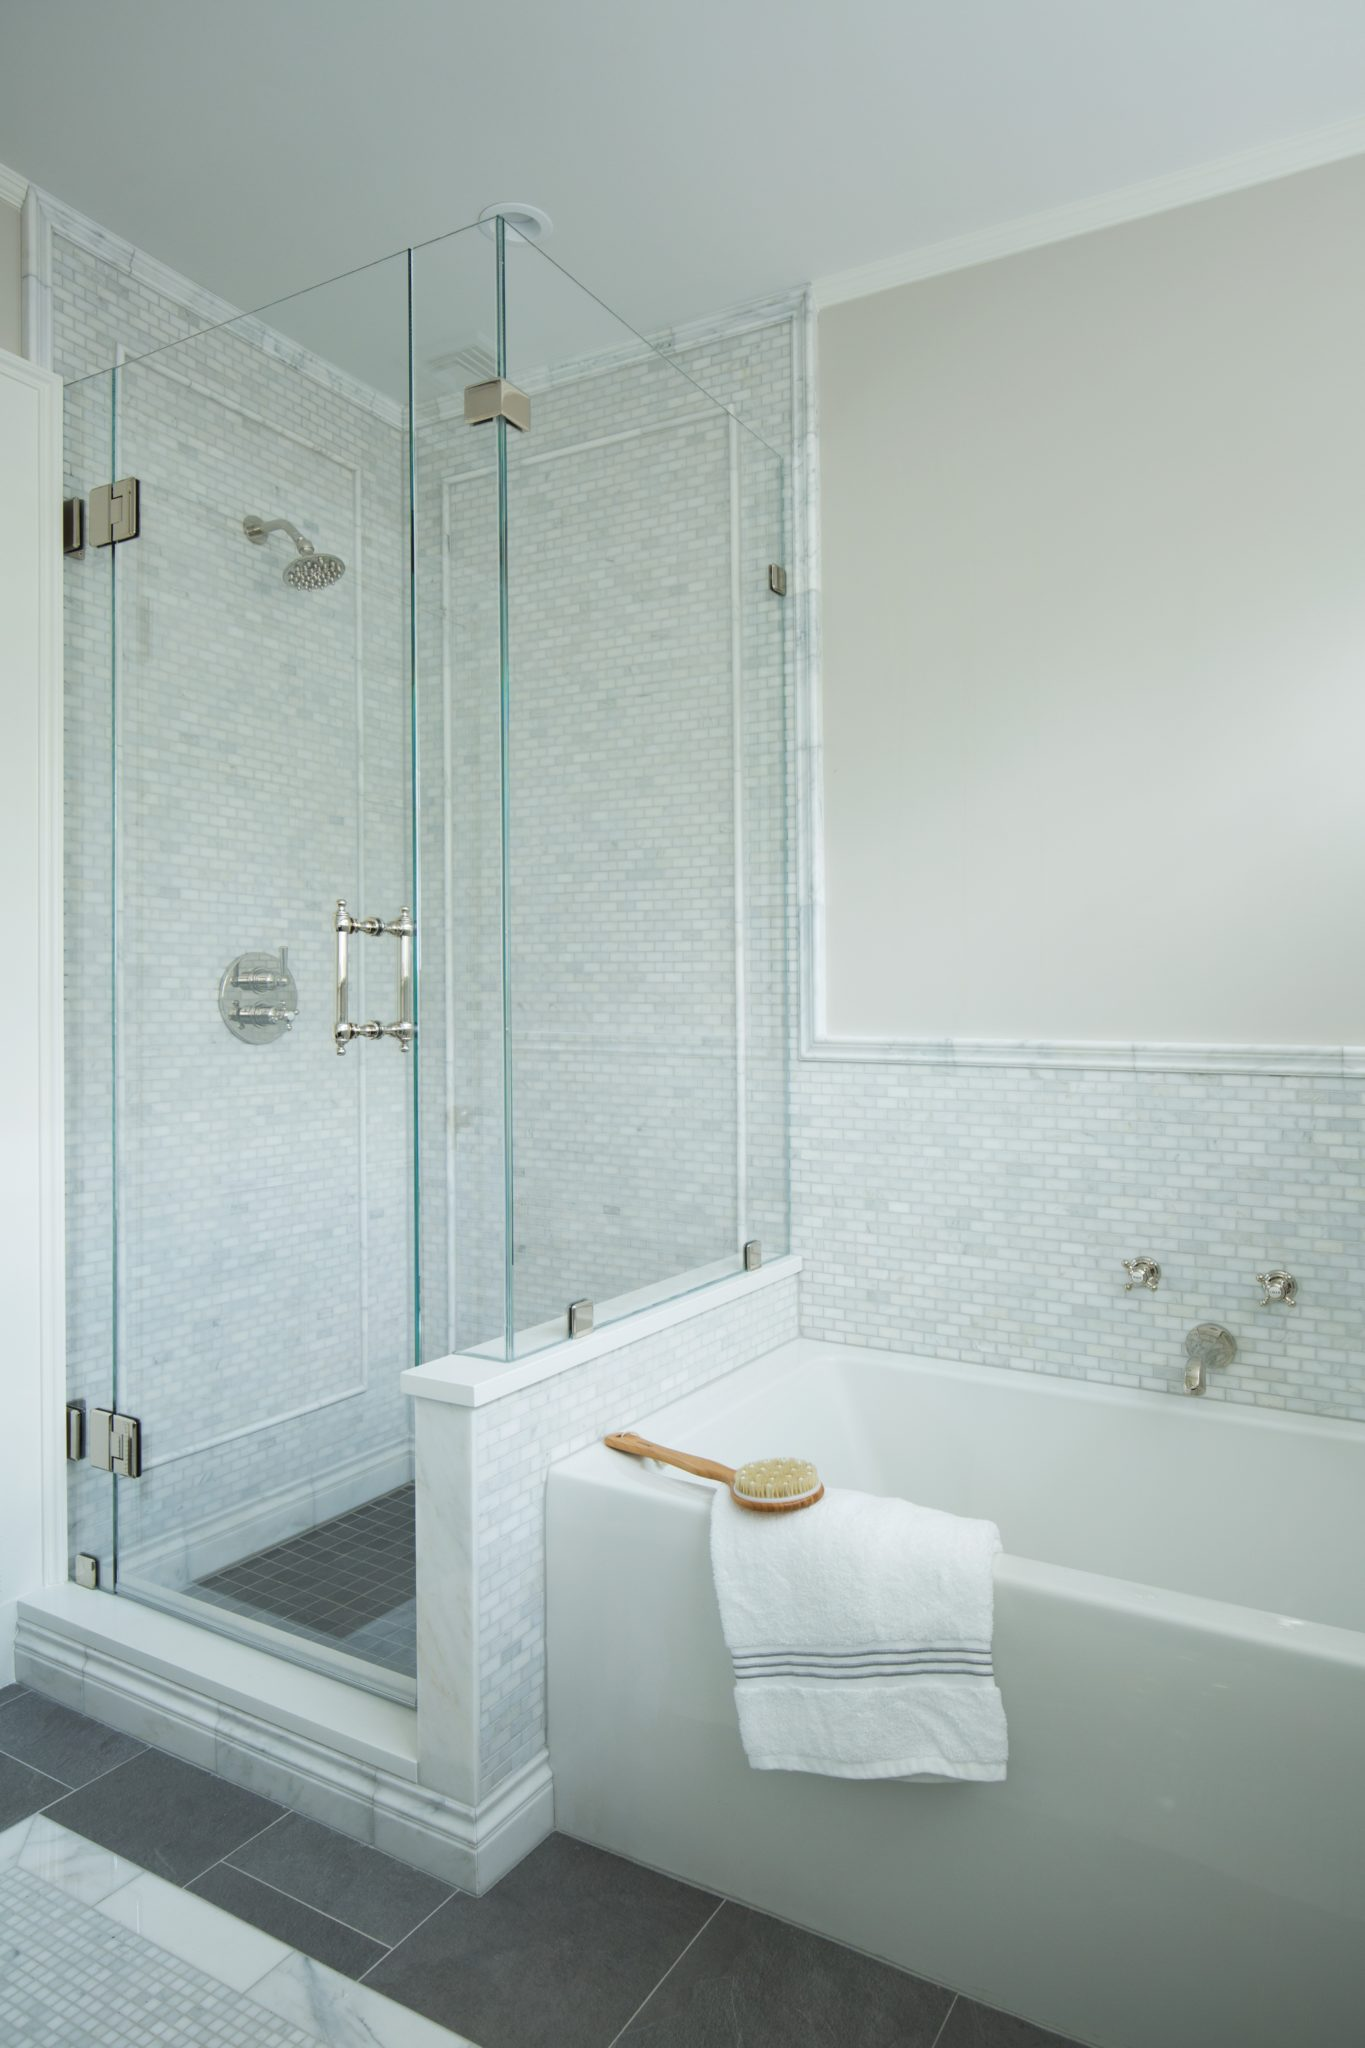 Marble mosaic tile walk-in shower and soaking tub by CW Design, LLC